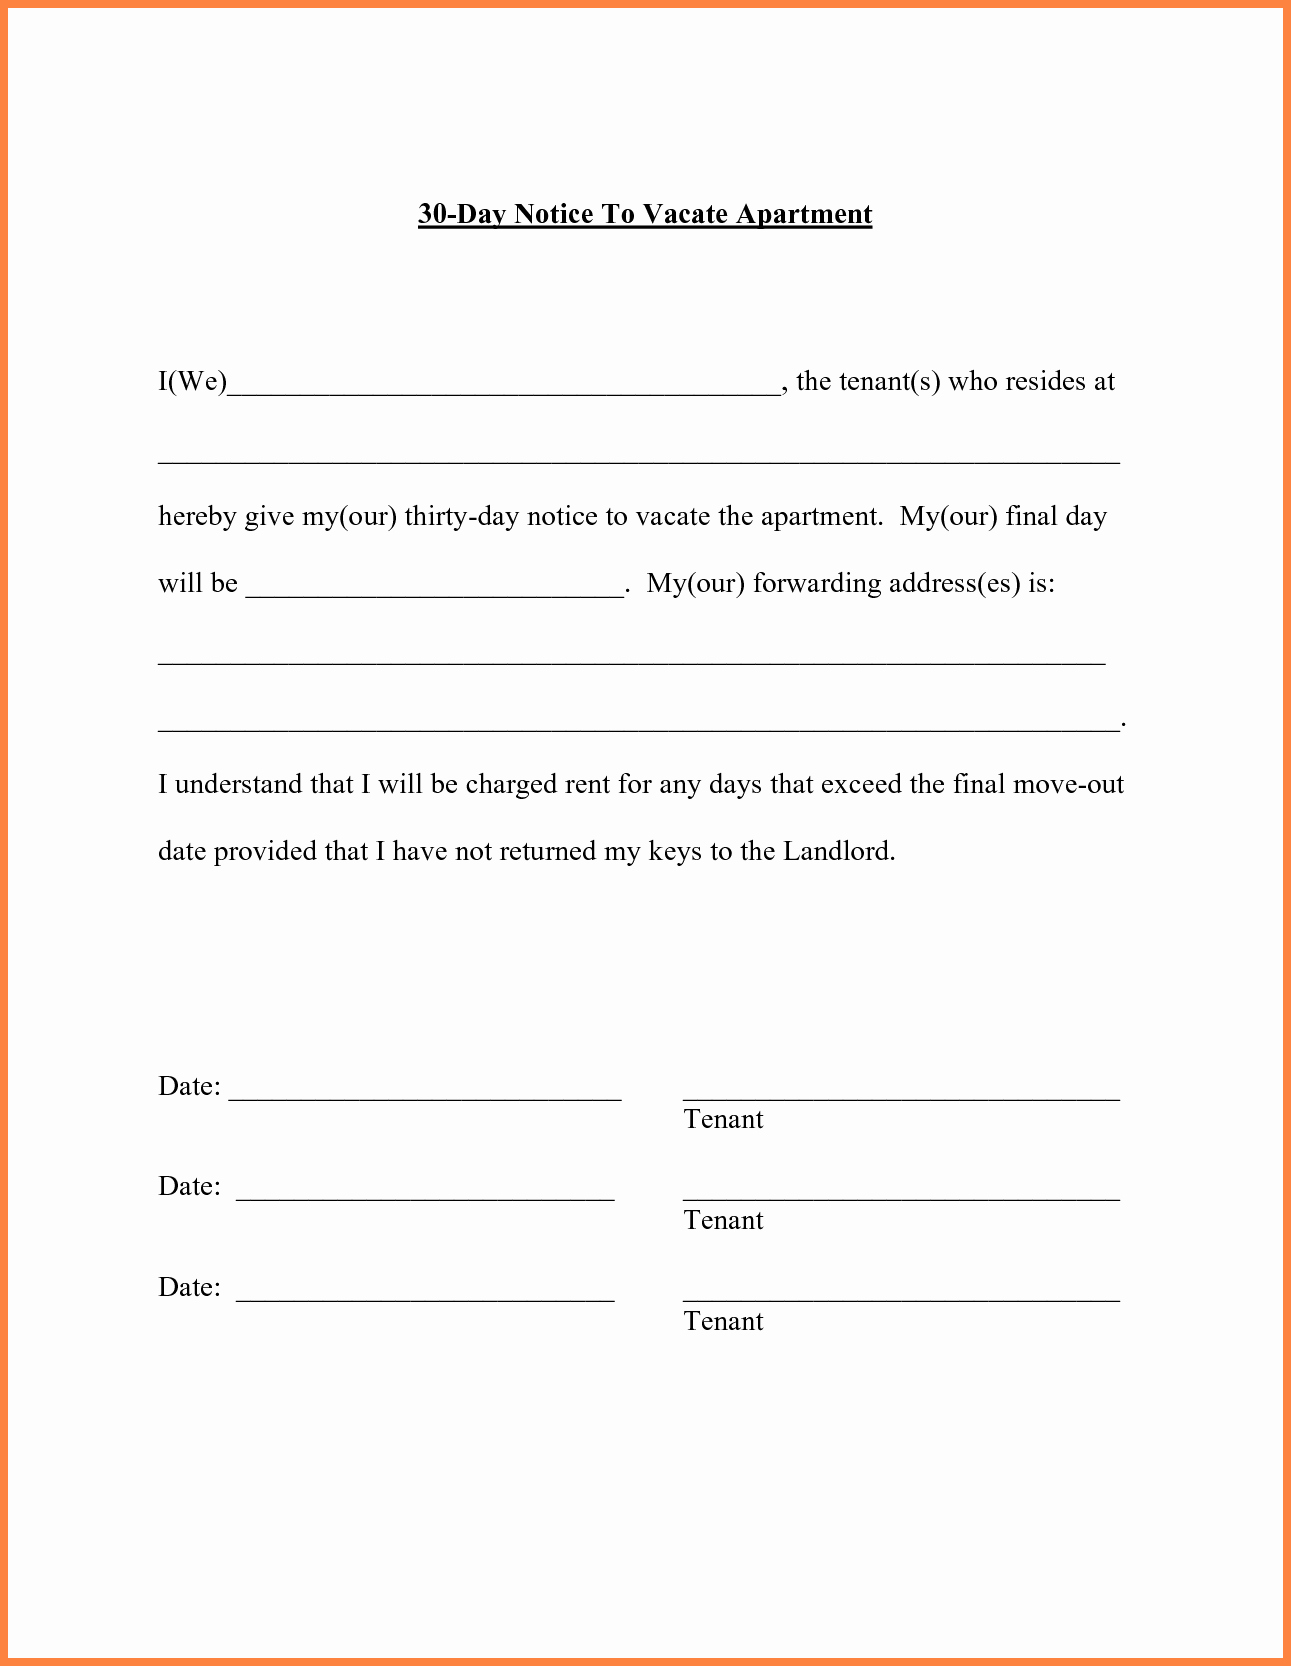 Moving Out Notification Letter Sample New Sample Notice to Vacate Apartment Apartment Decorating Ideas